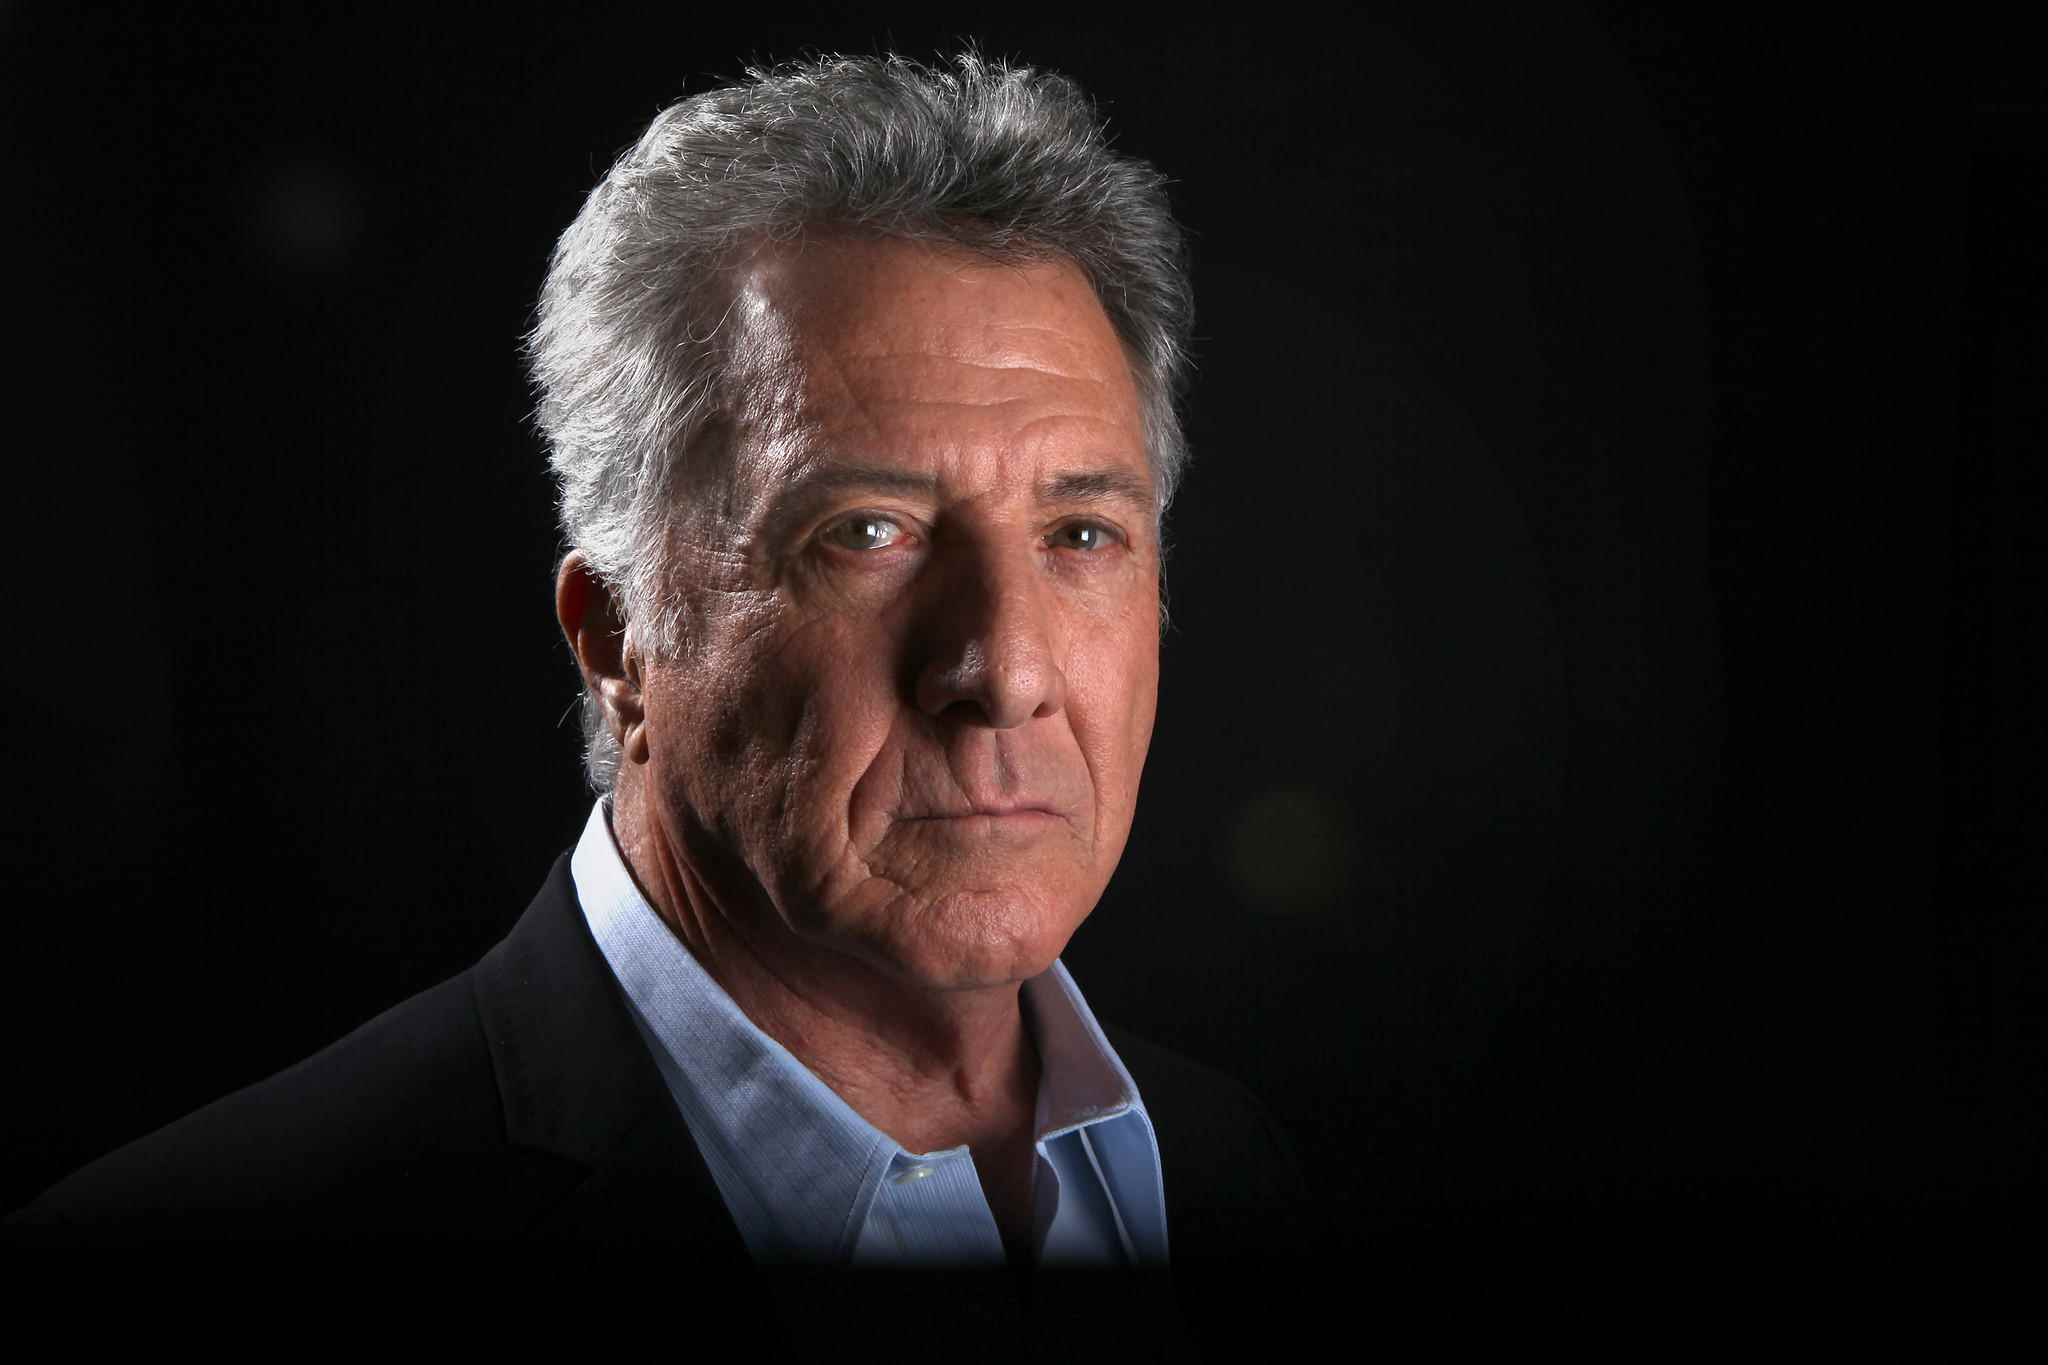 Kathryn Rossetter Pictures >> Dustin Hoffman accused of sexual harassment again - PeepingMoon